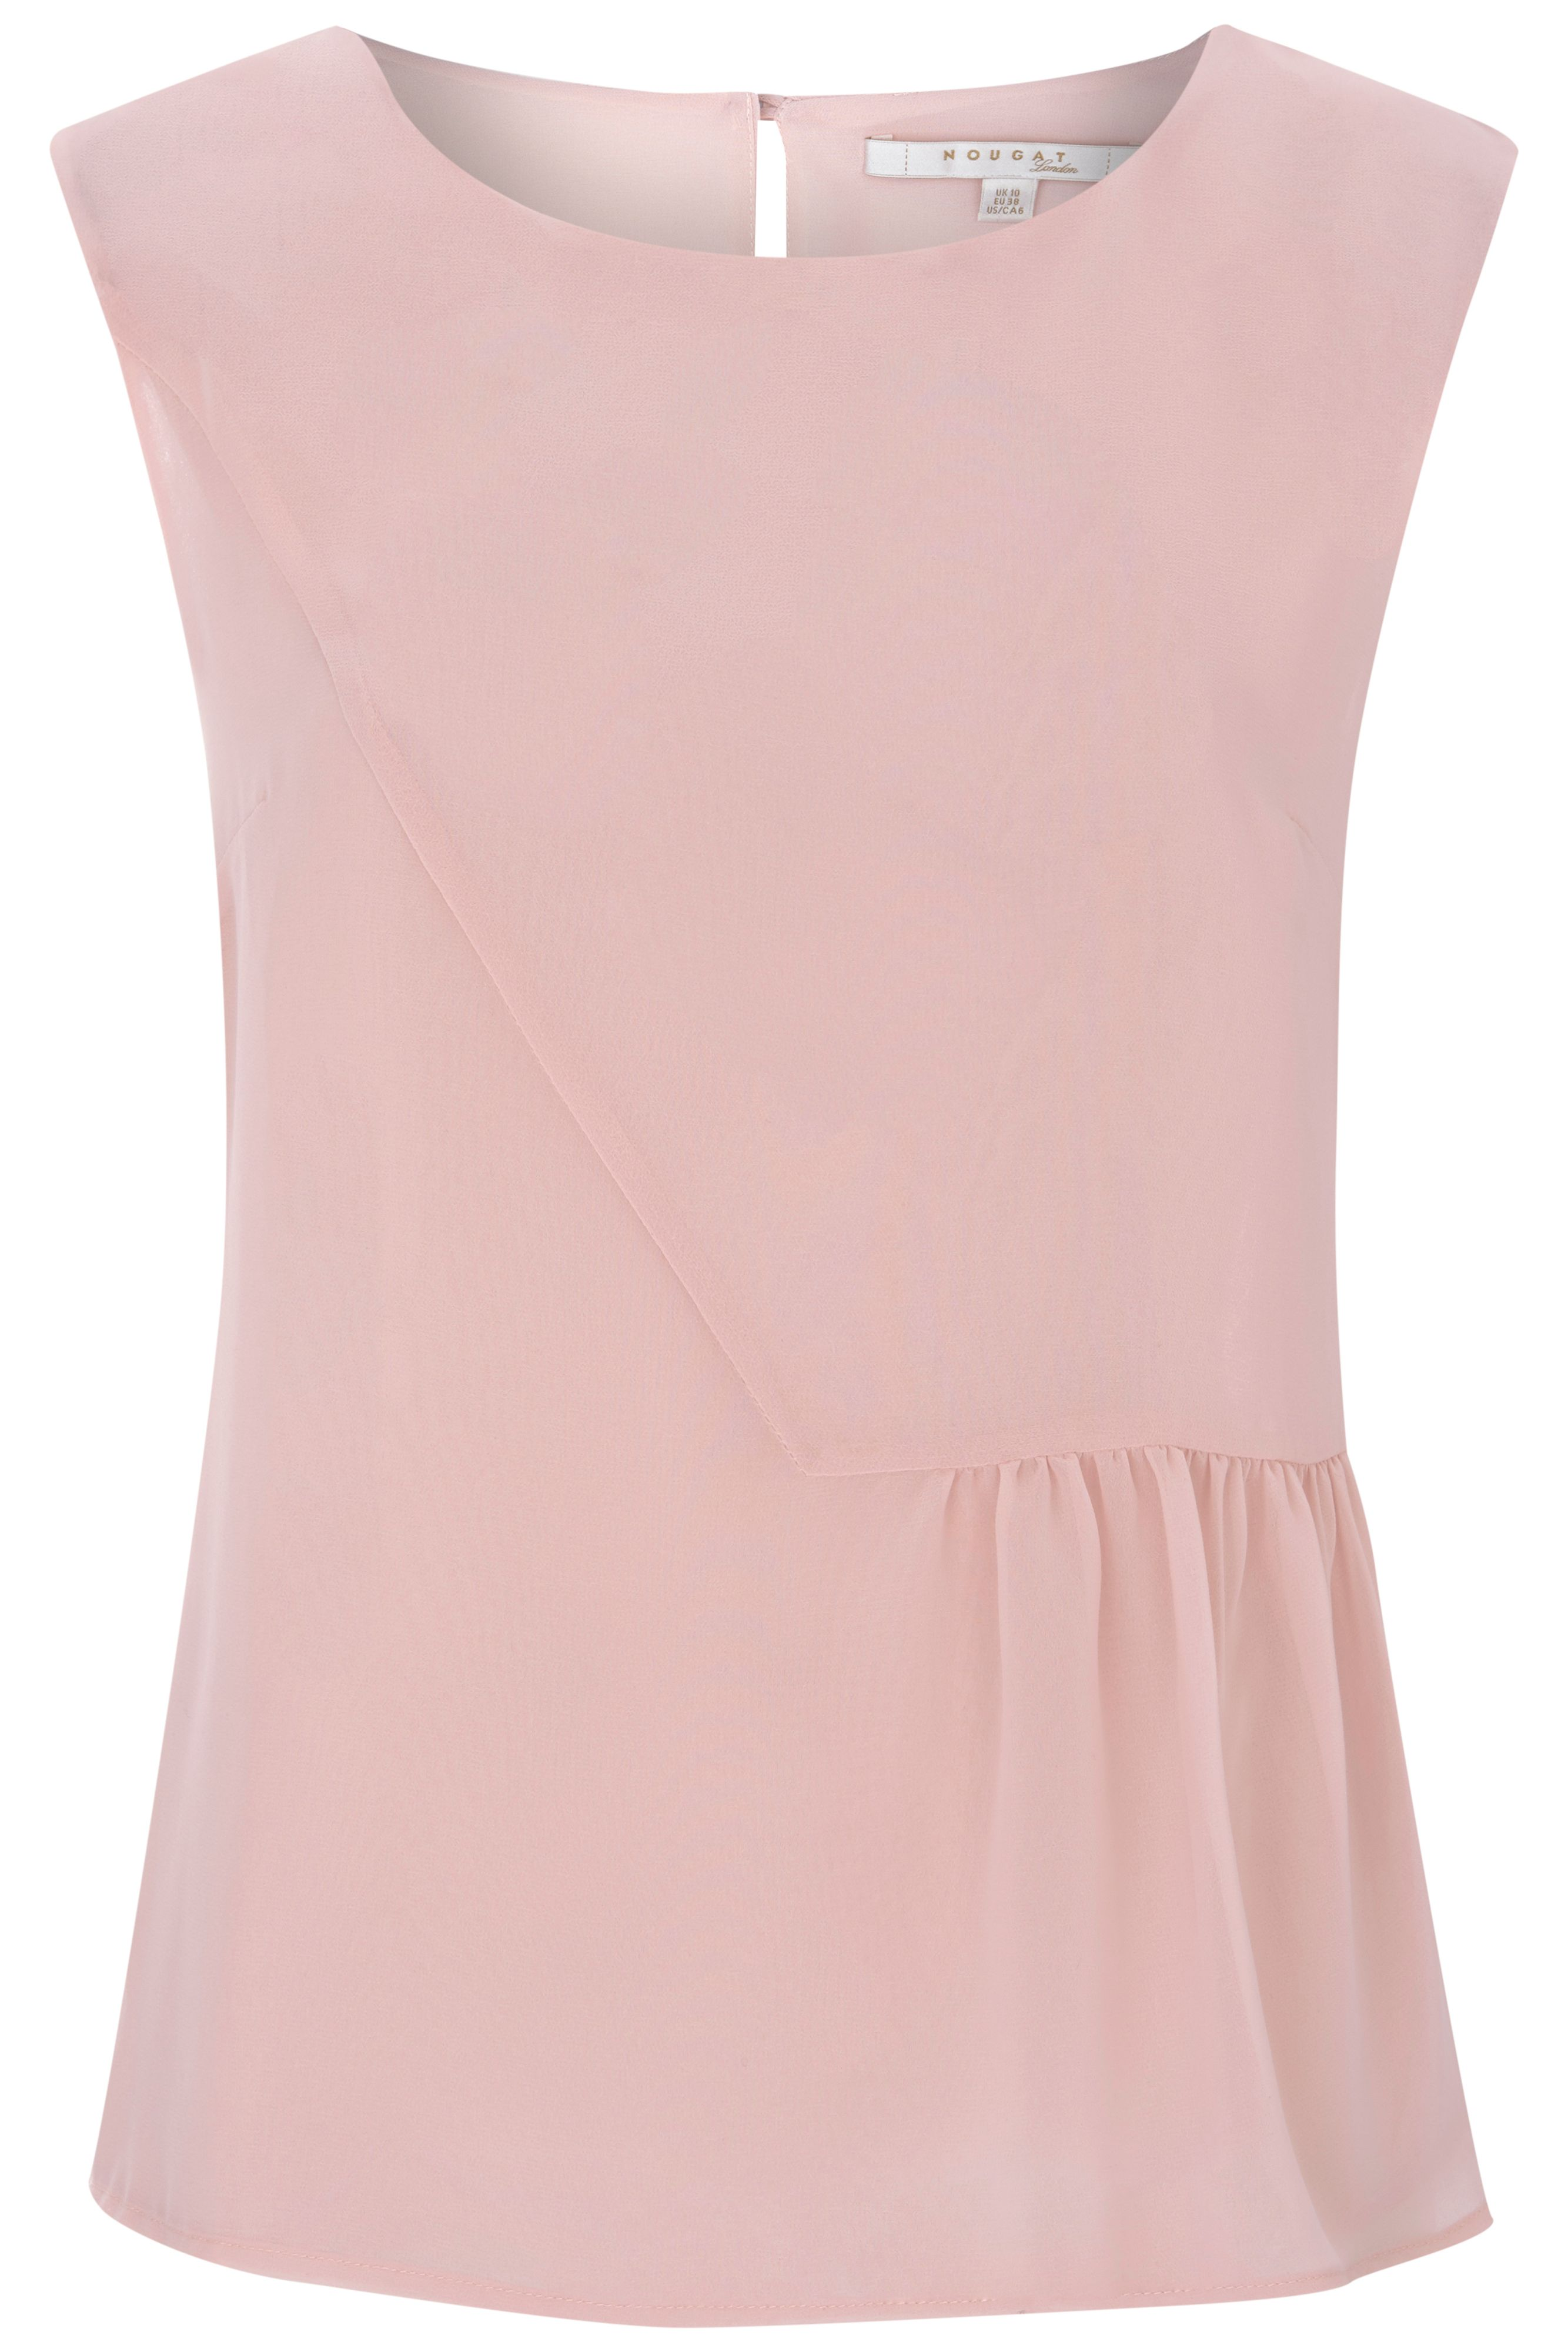 Nougat London Hibiscus Shell Top, Nude